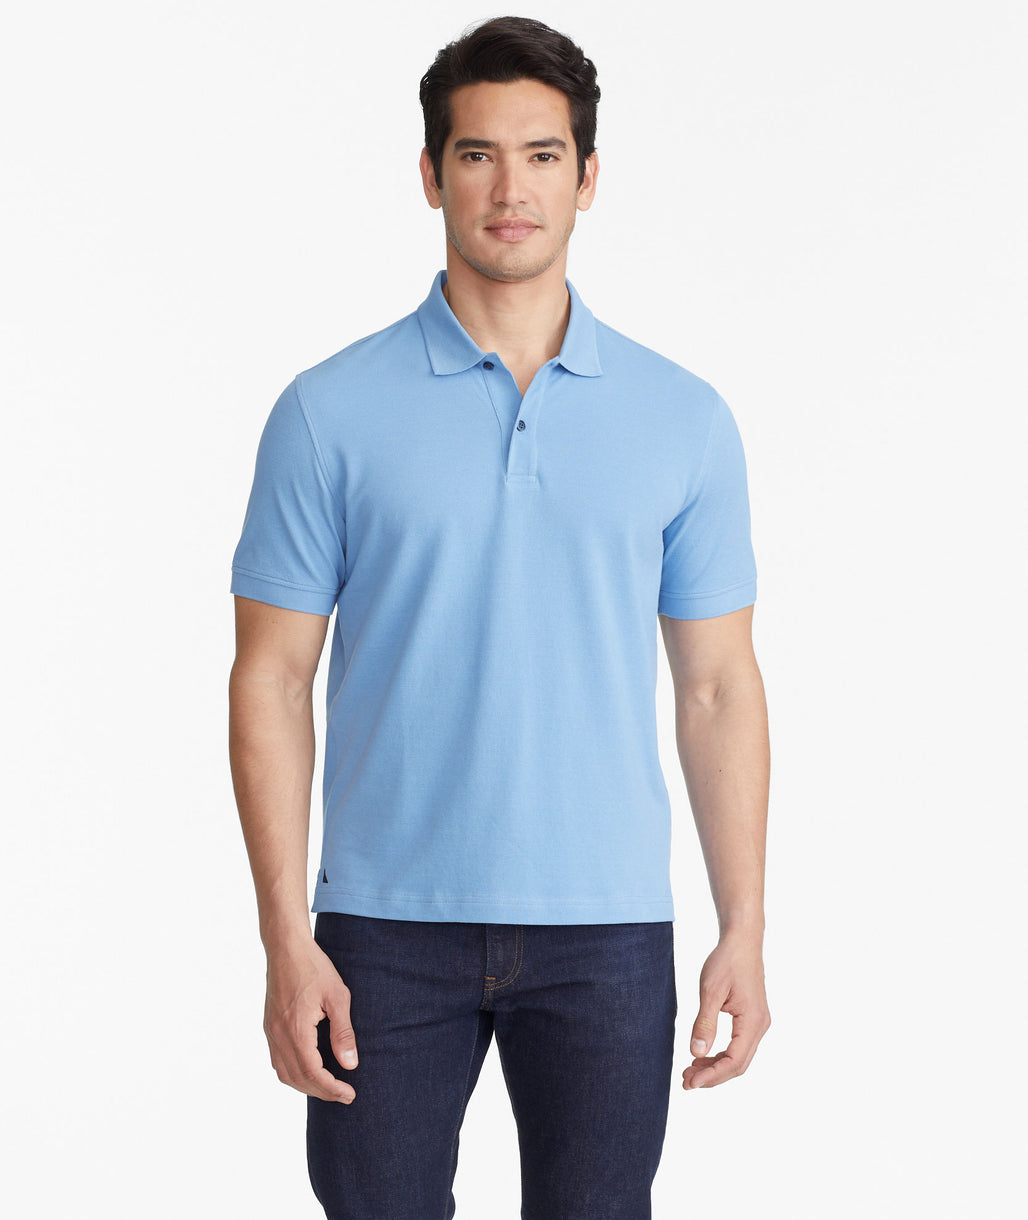 Model wearing a Mid Blue The Classic Pique Polo